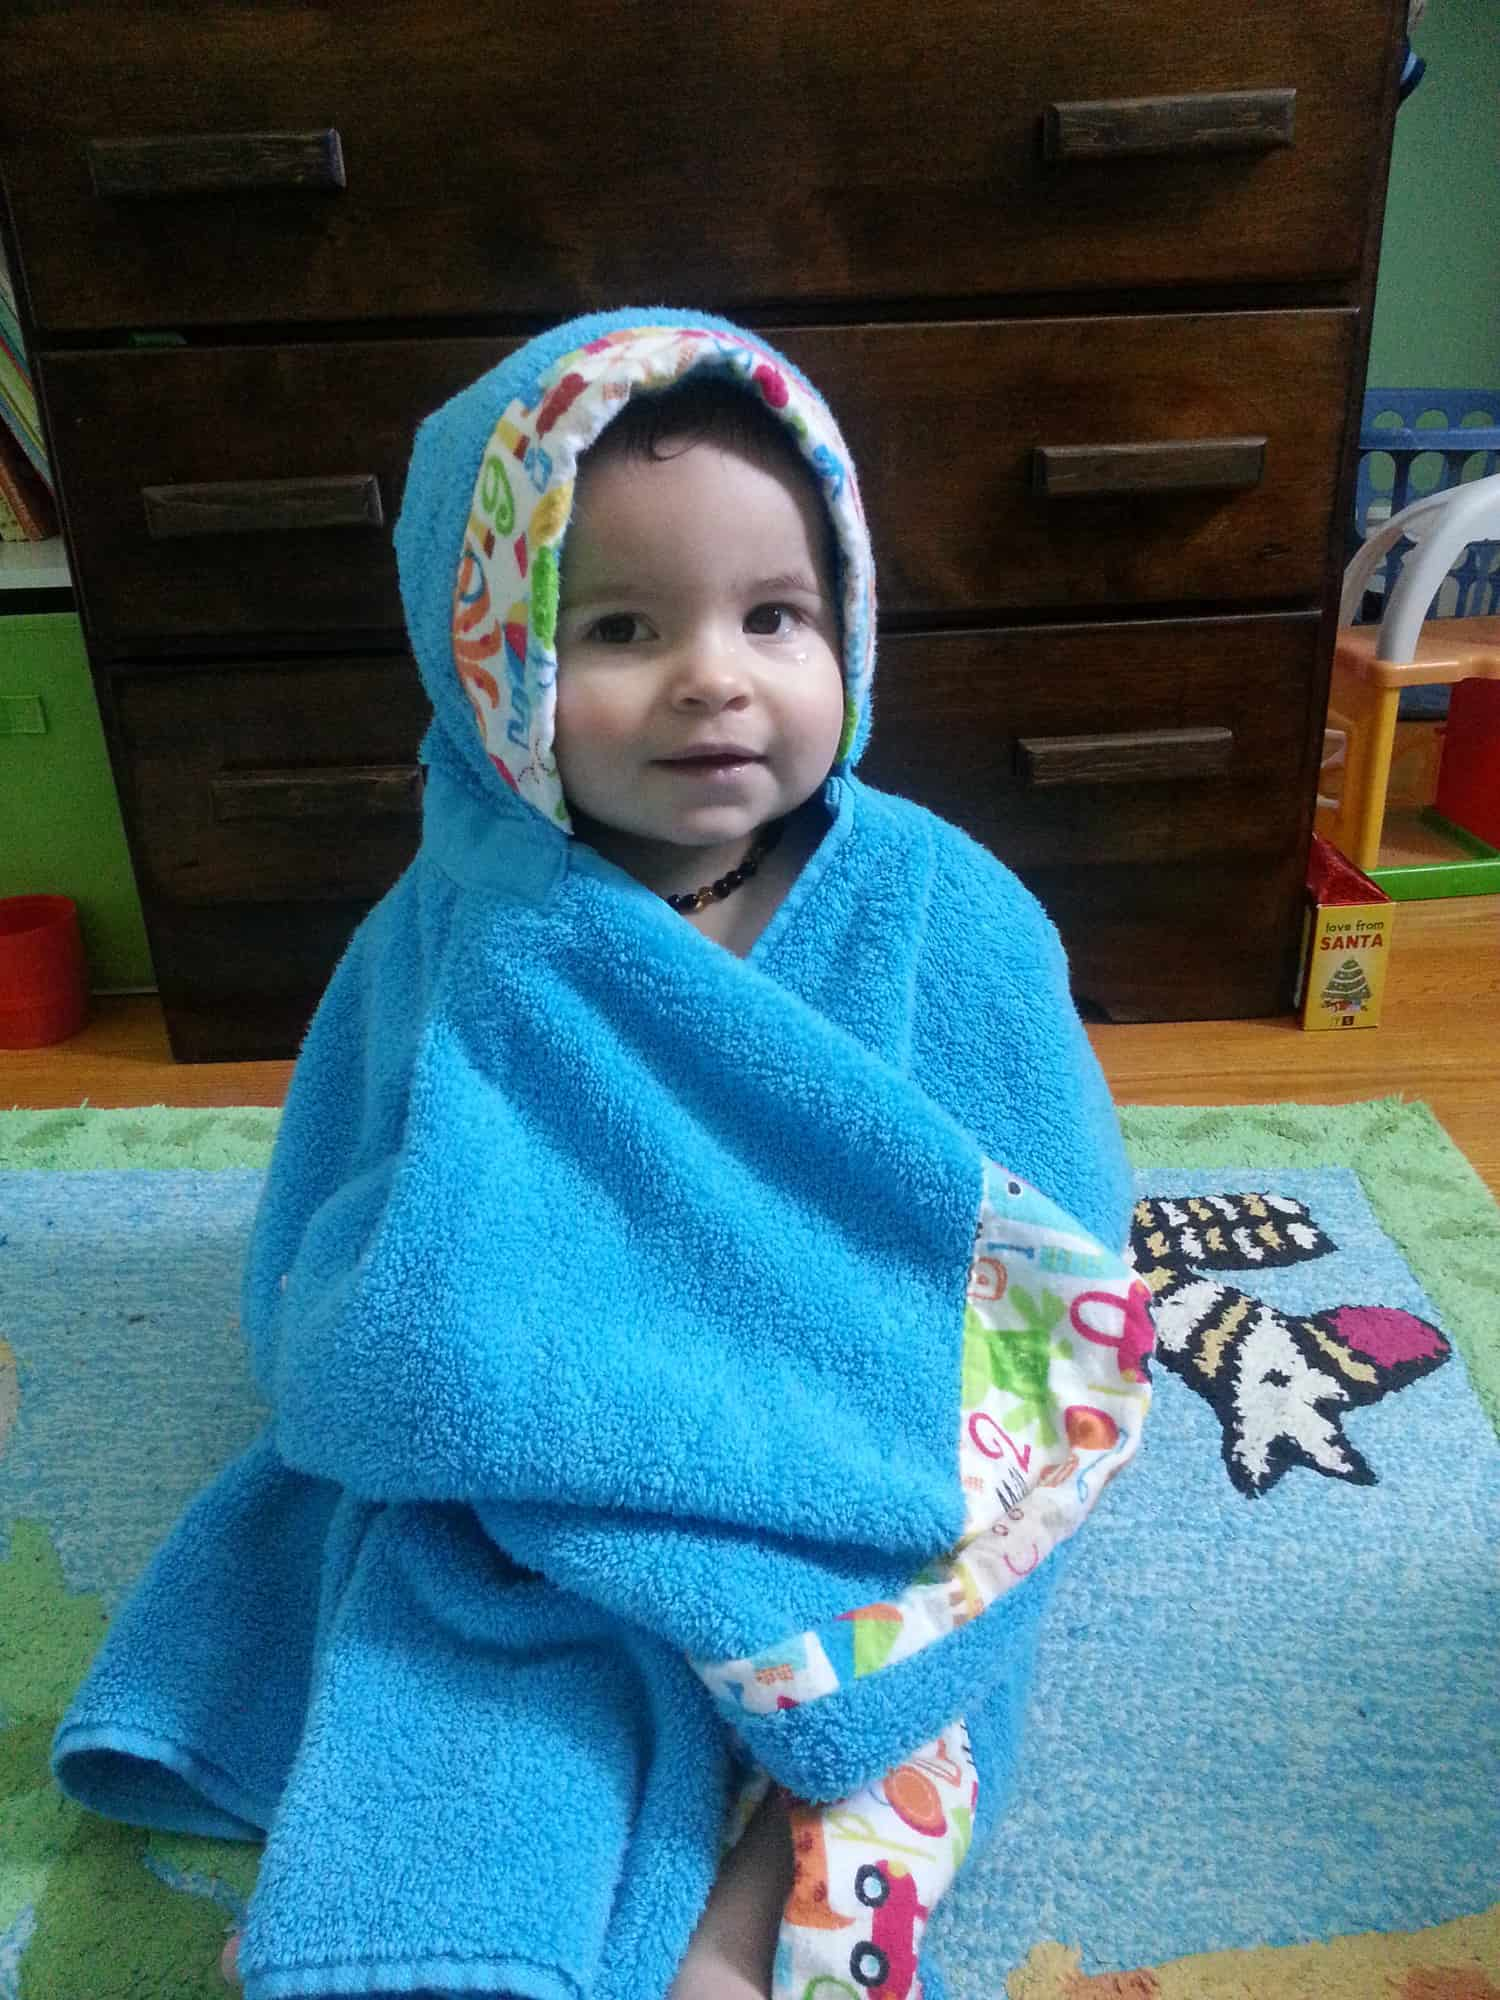 made by hand show handmade hooded towels